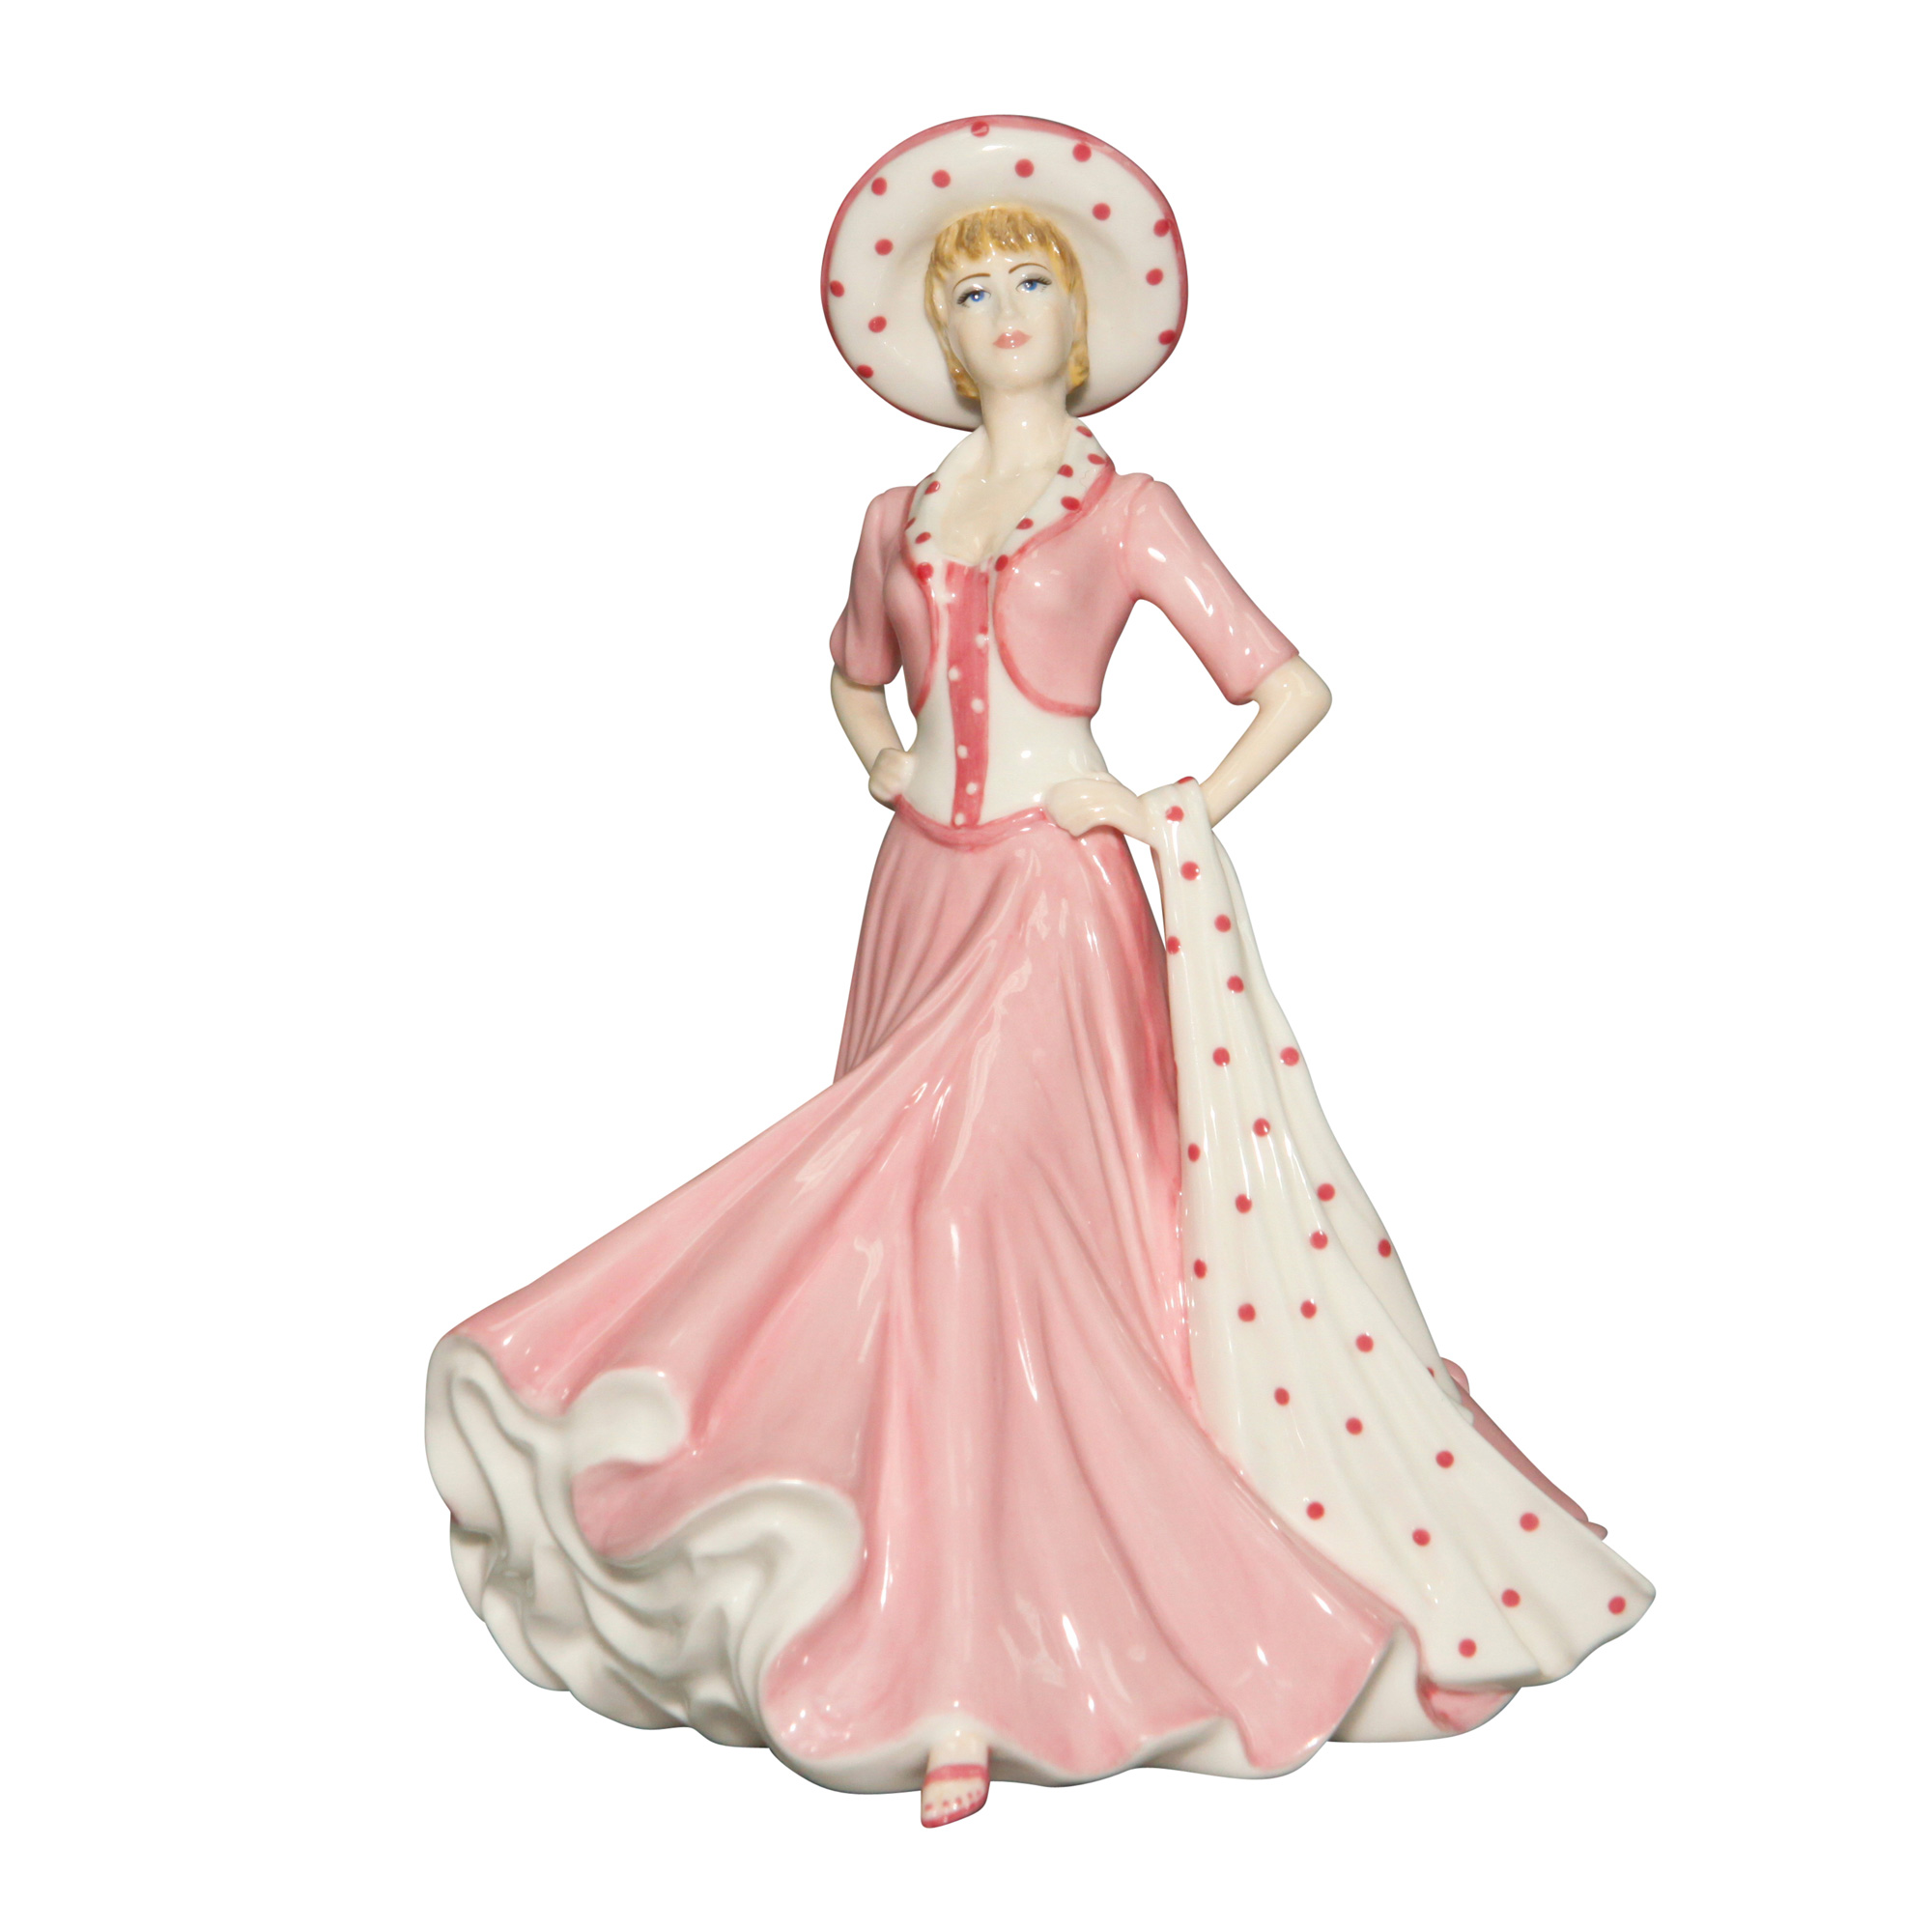 Good Luck - Coalport Figurine